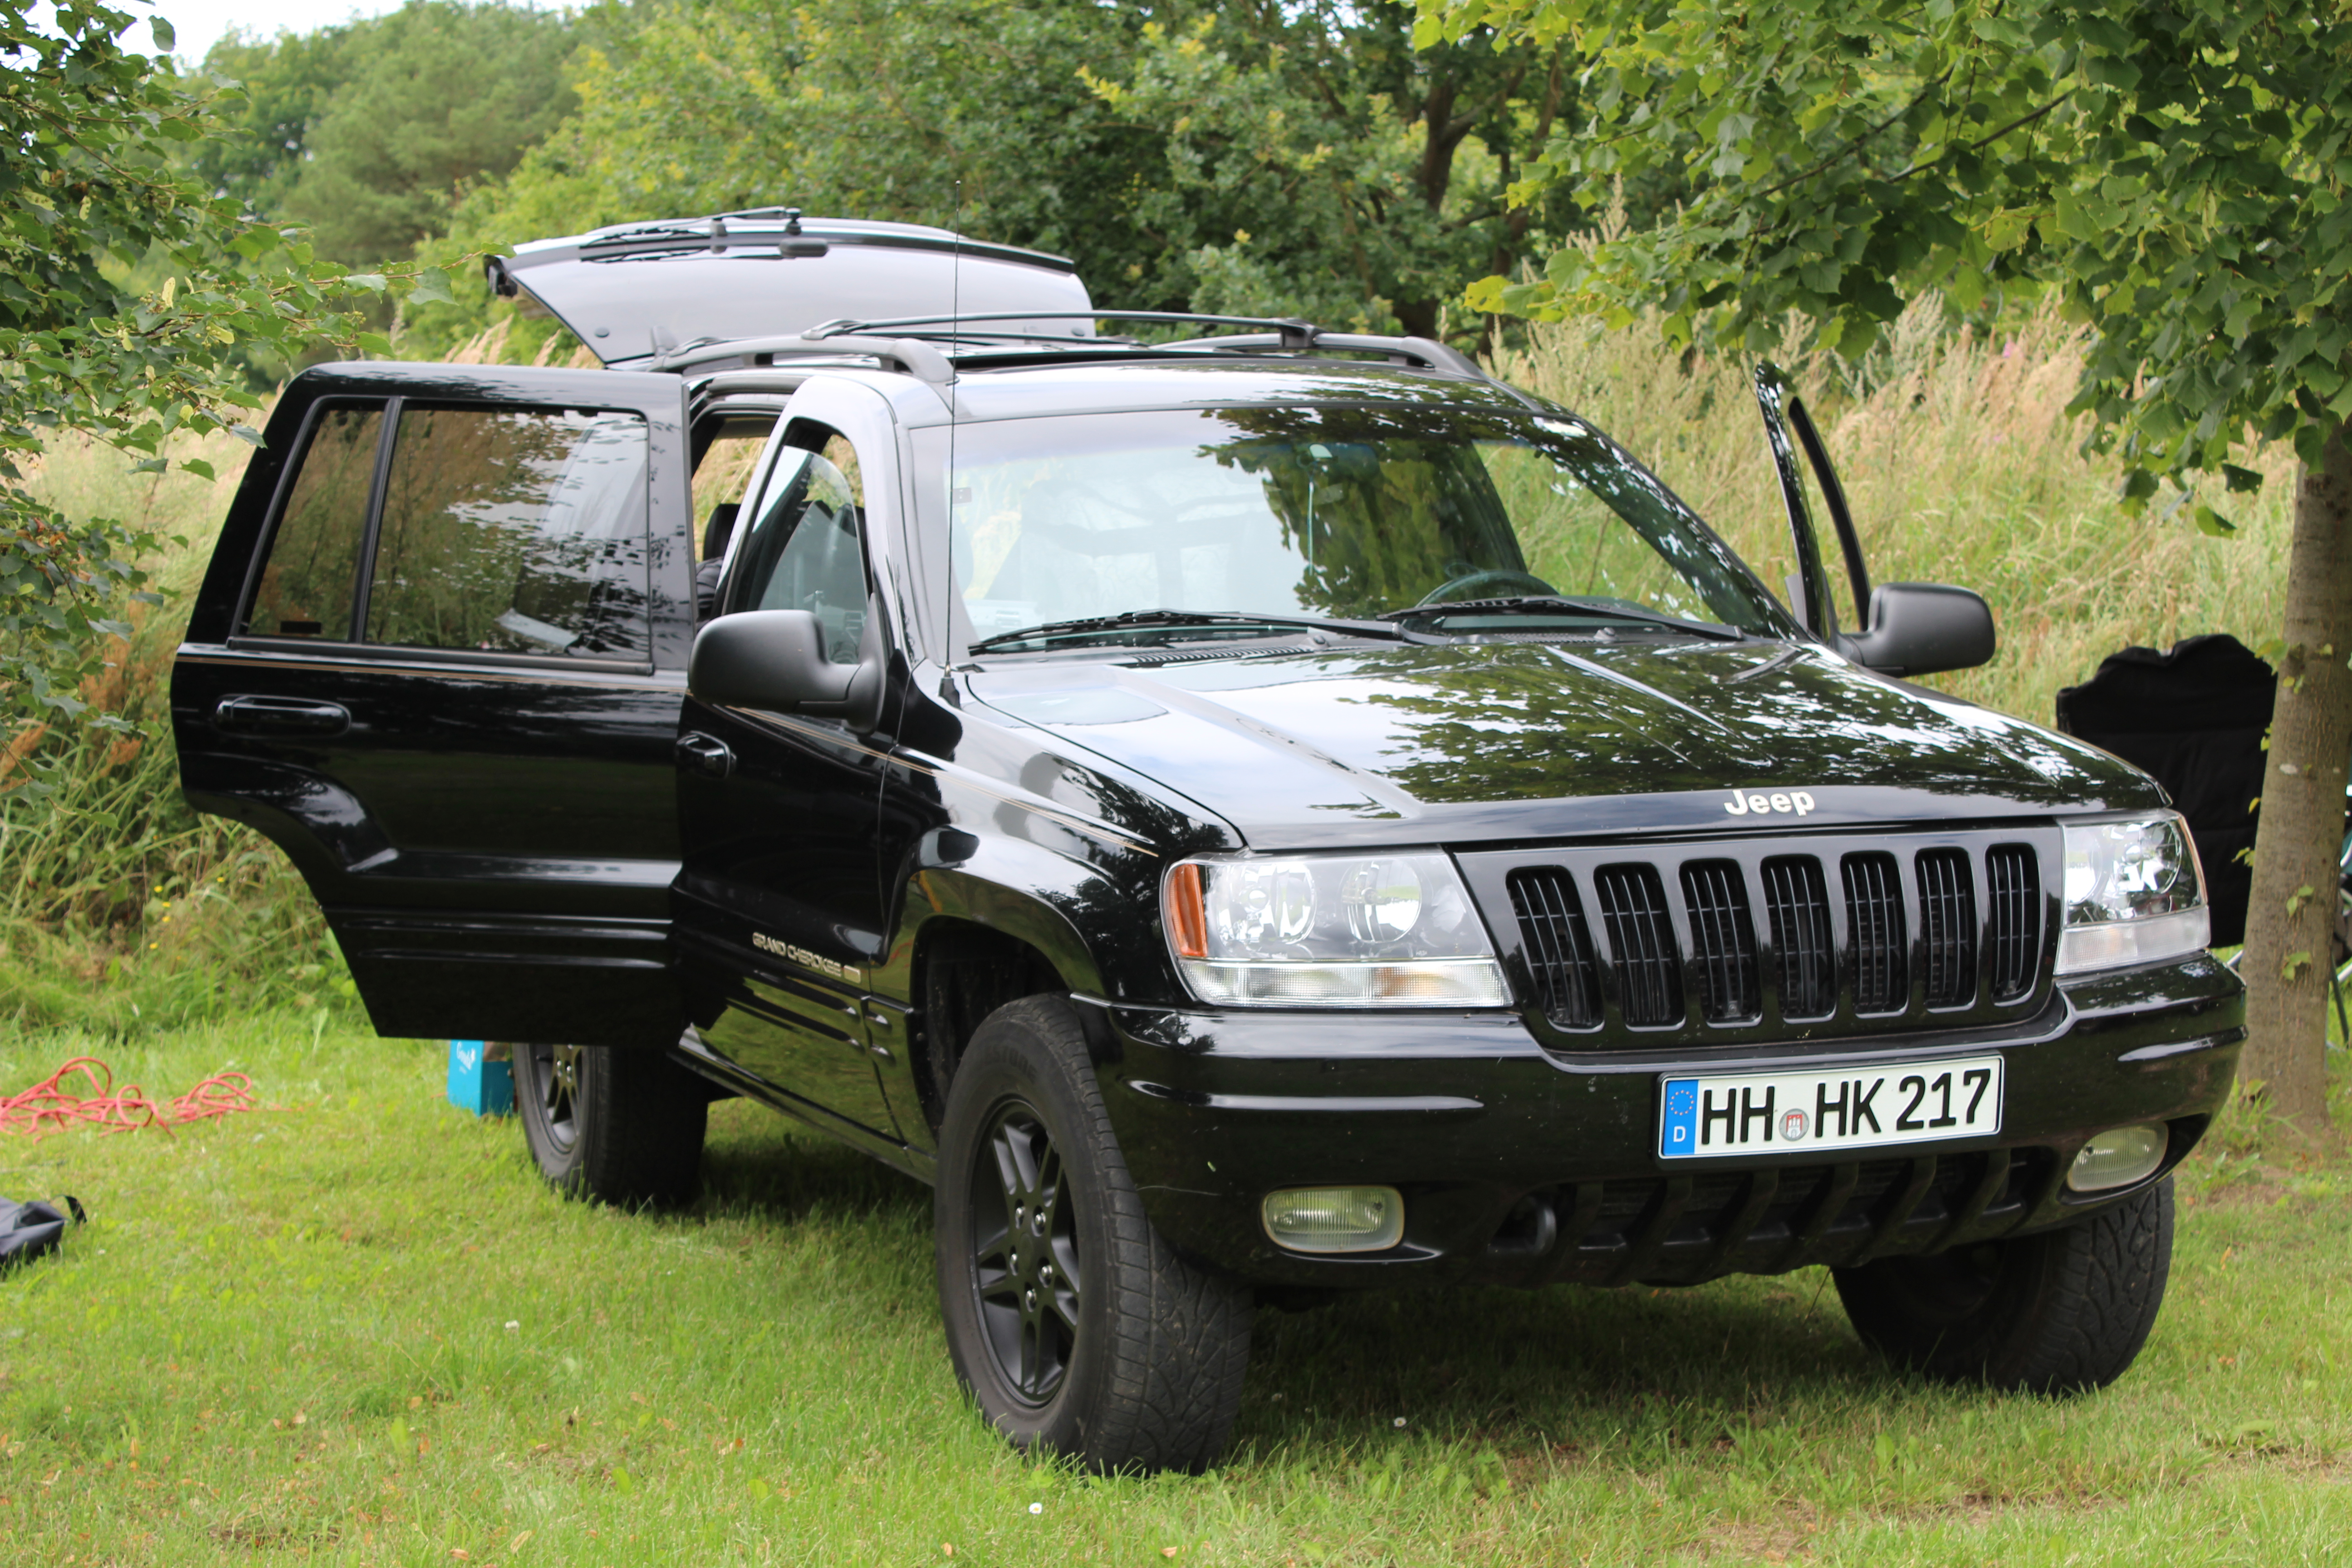 2001 jeep grand cherokee ii (wj) – pictures, information and specs